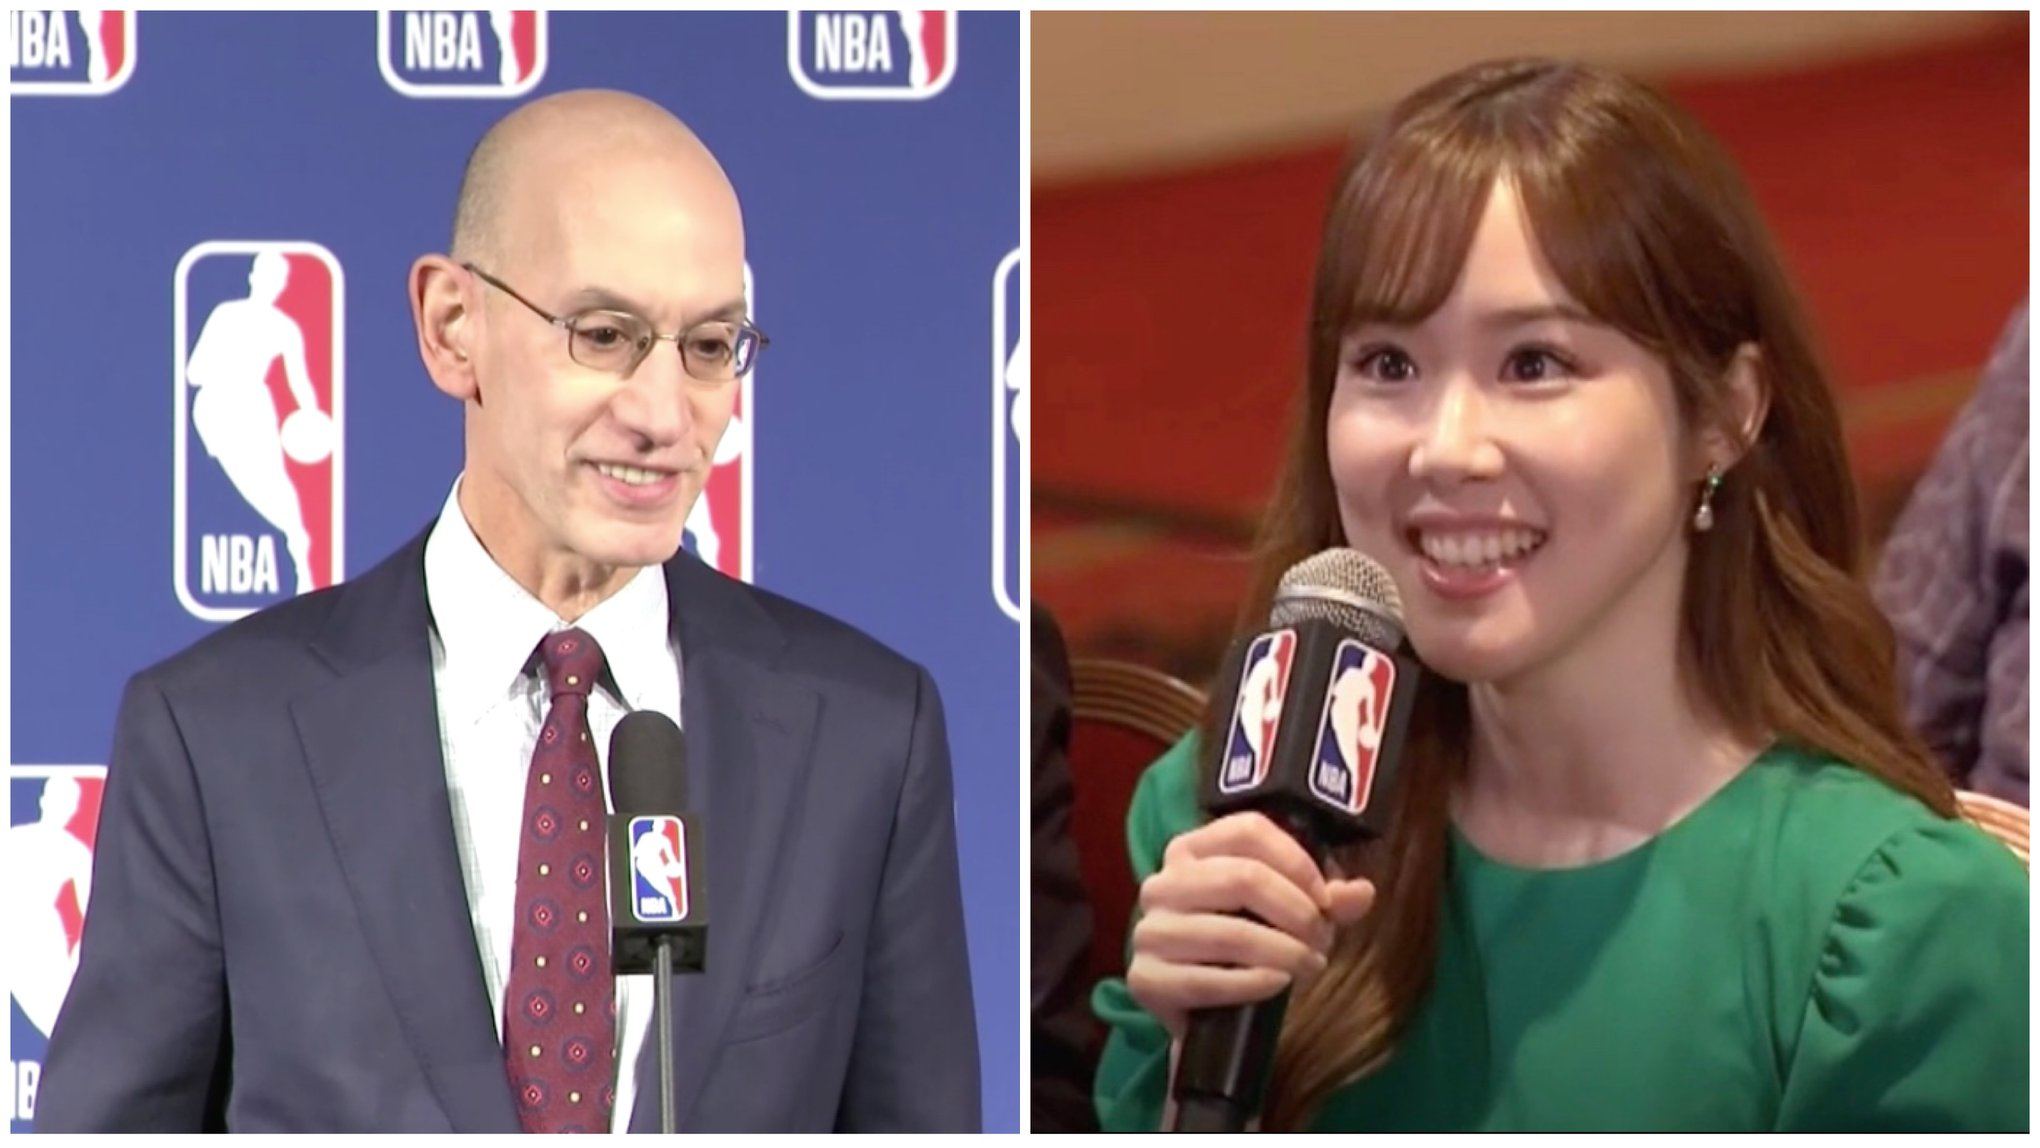 NBA Commissioner Interview